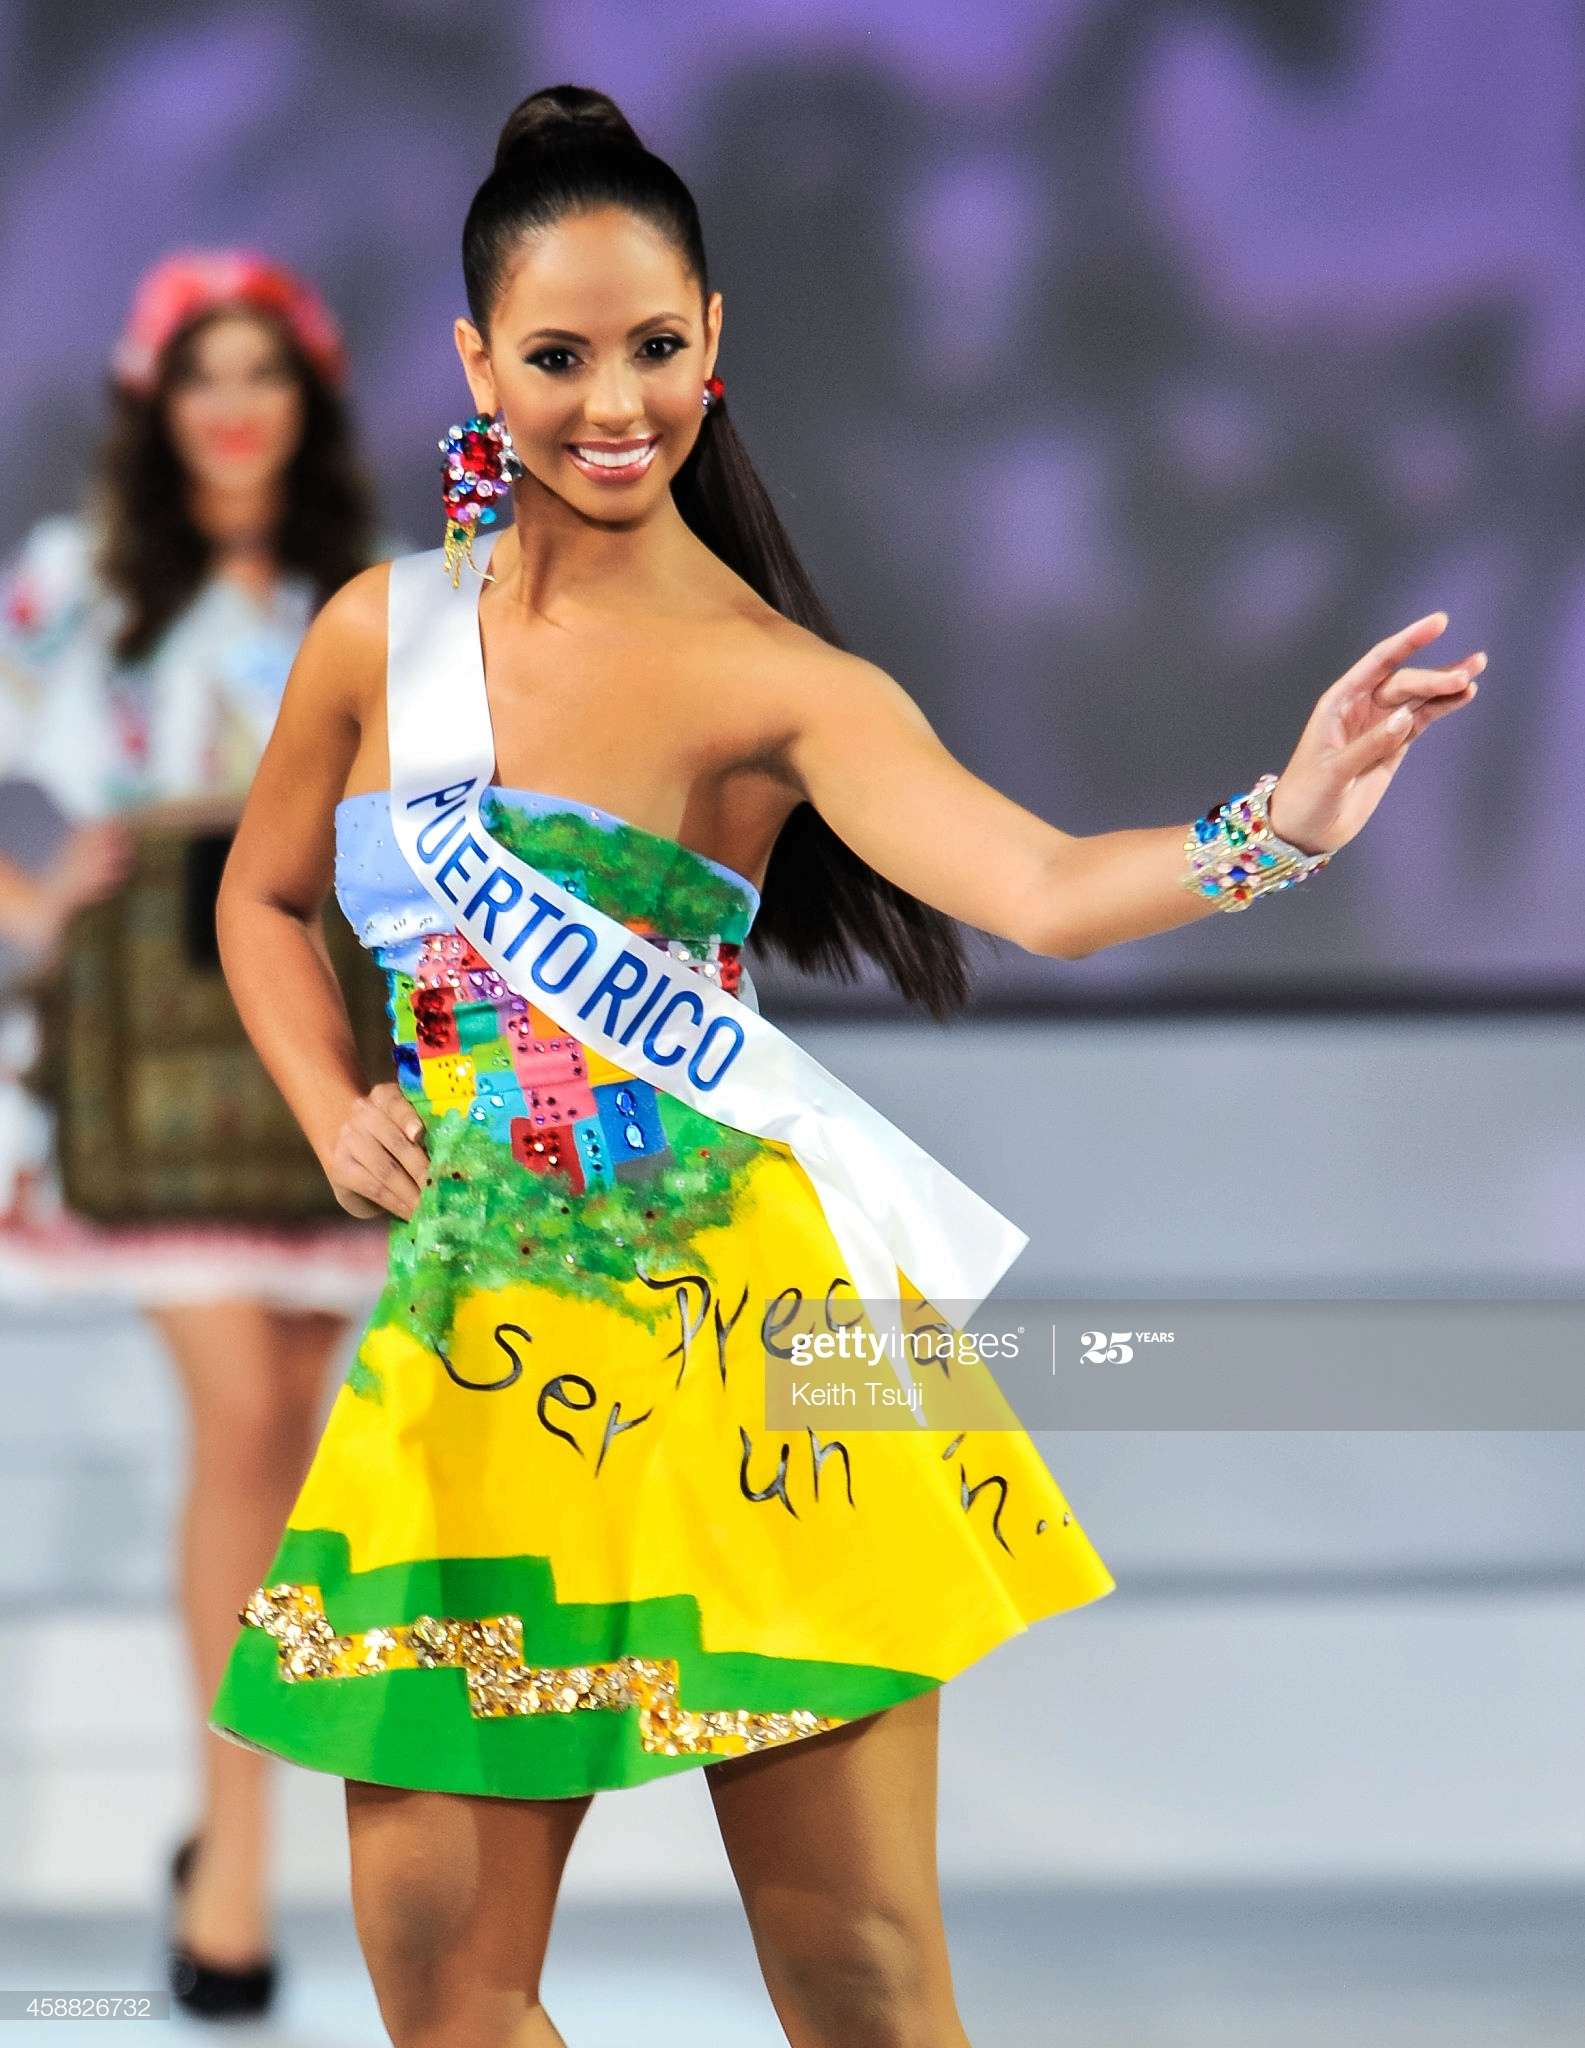 valerie hernandez, miss international 2014. Miss-p32